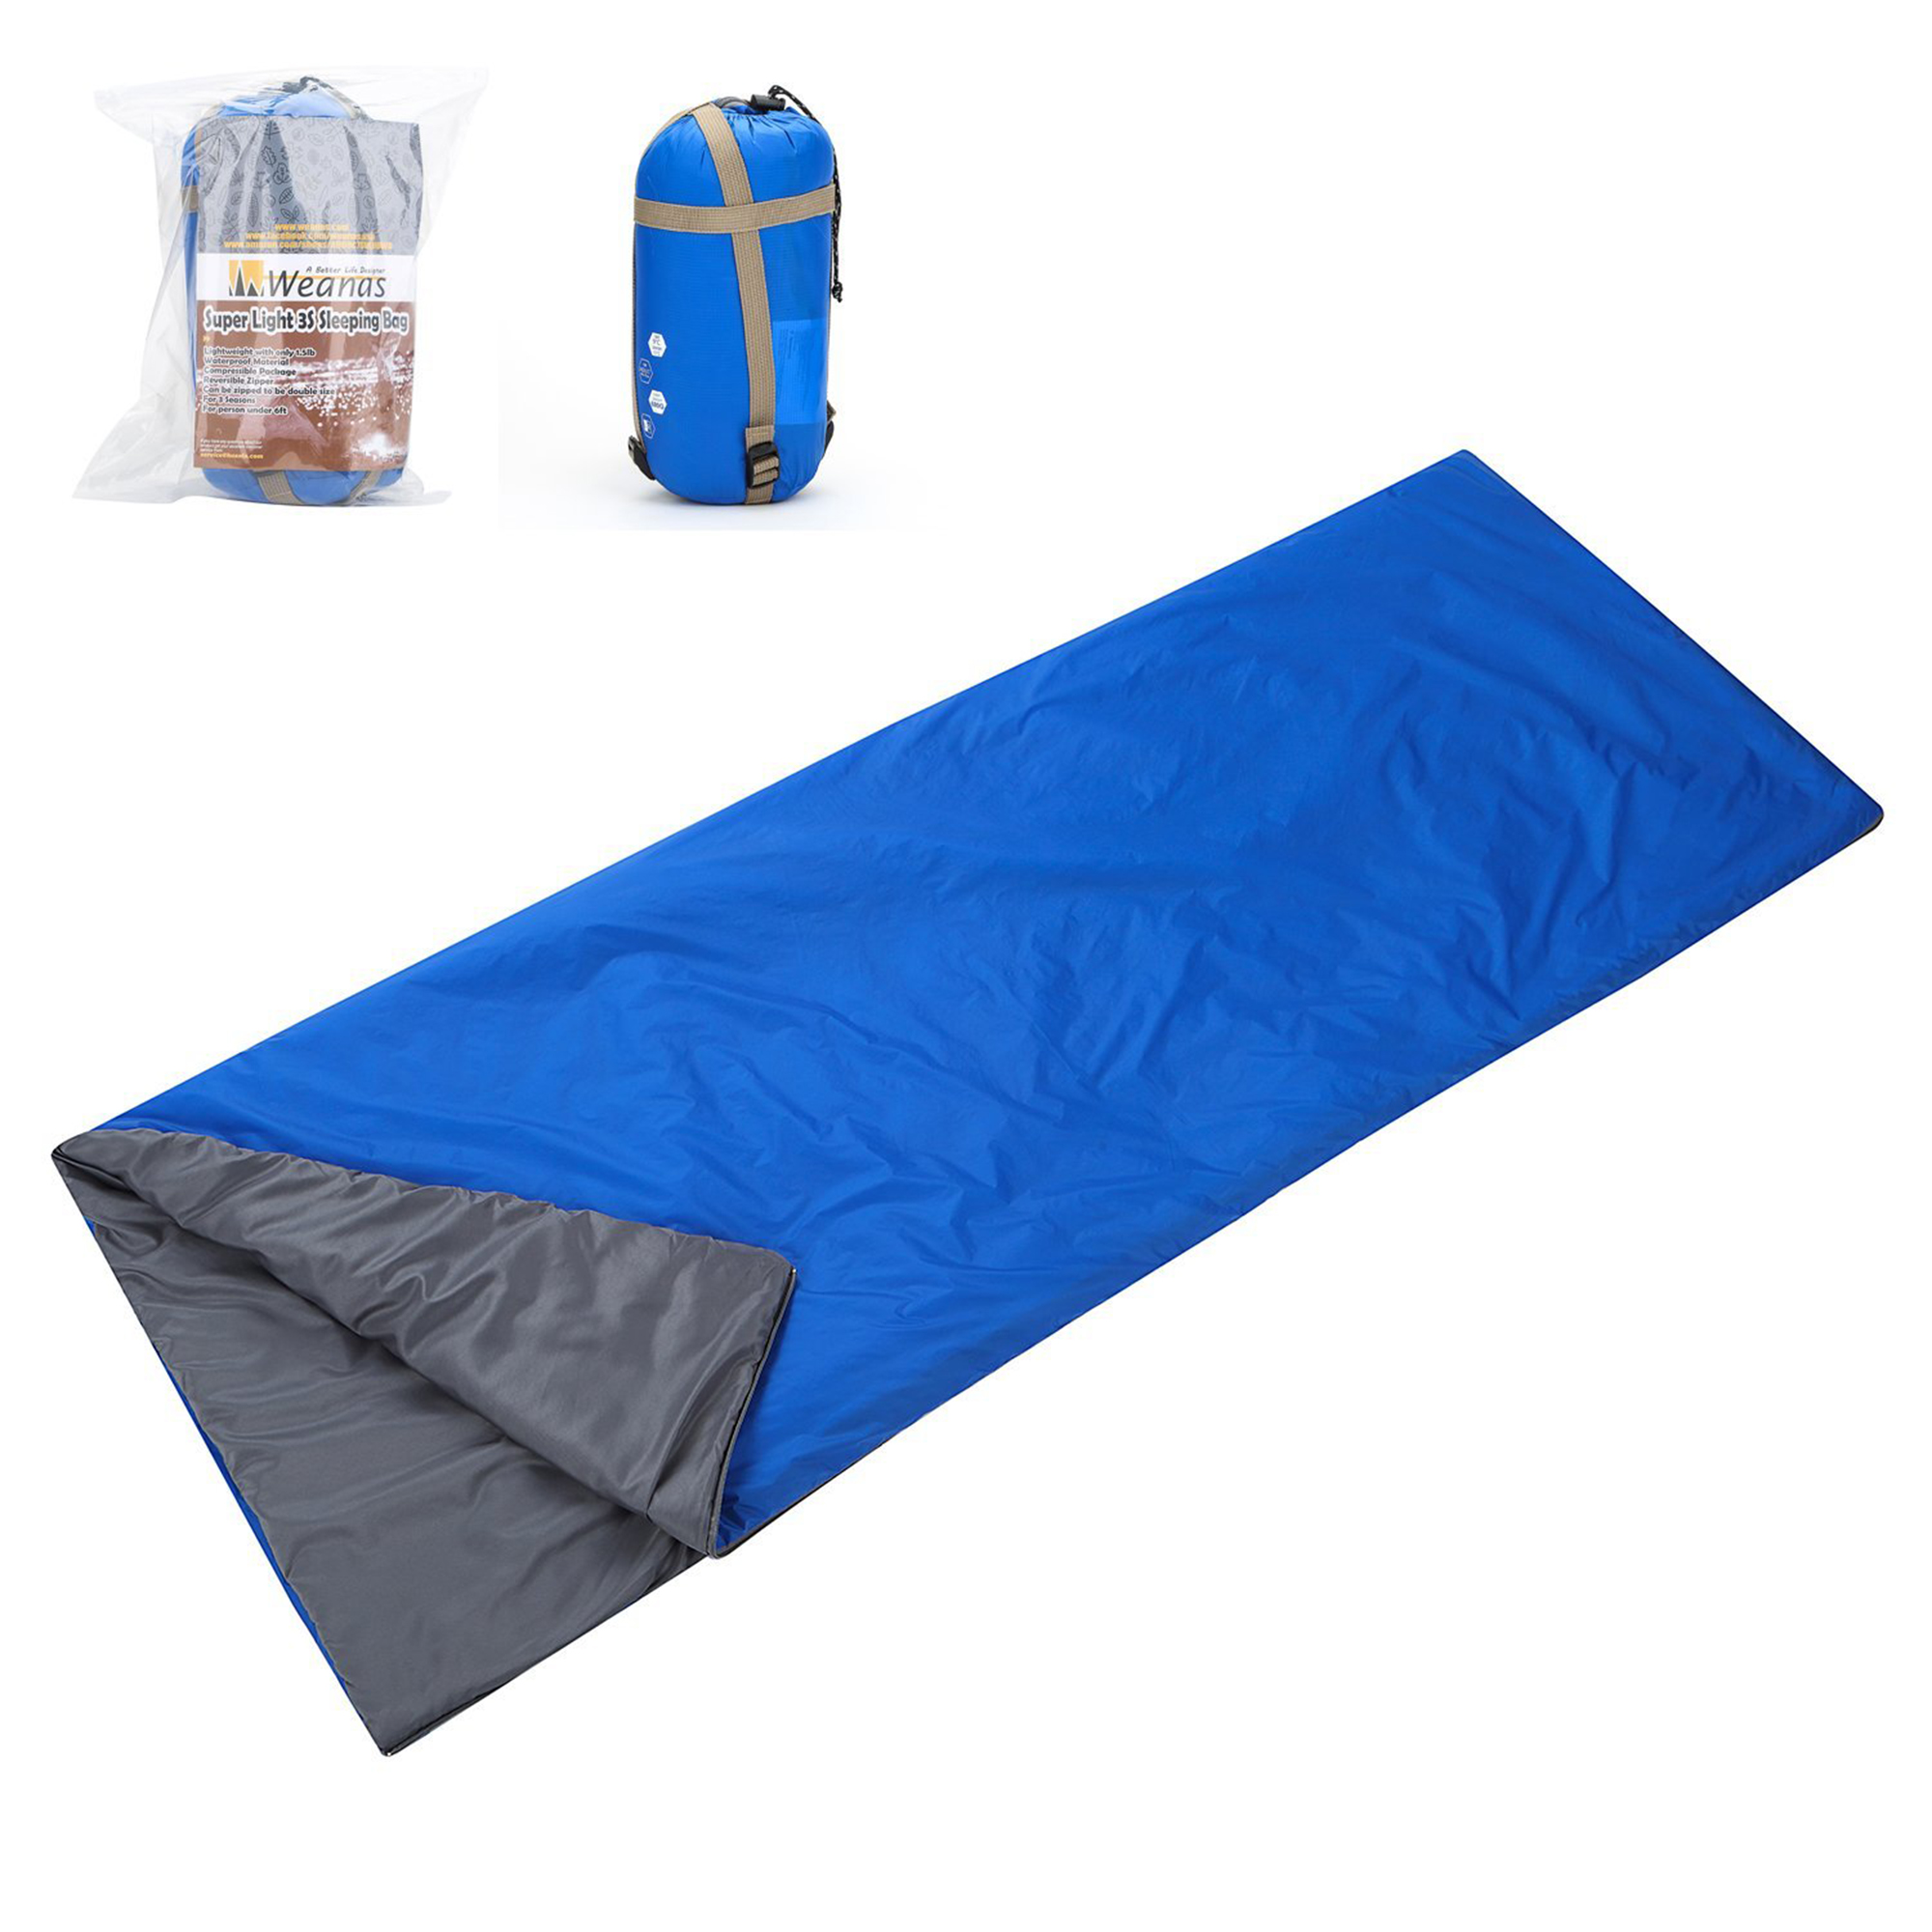 WEANAS Lightweight Compact Outdoor Camping Envelope Sleeping Bag Comfortable Durable Waterproof for Summer School Hiking Backpacking Travel Adventurer New Extra Size Launched (Olive)